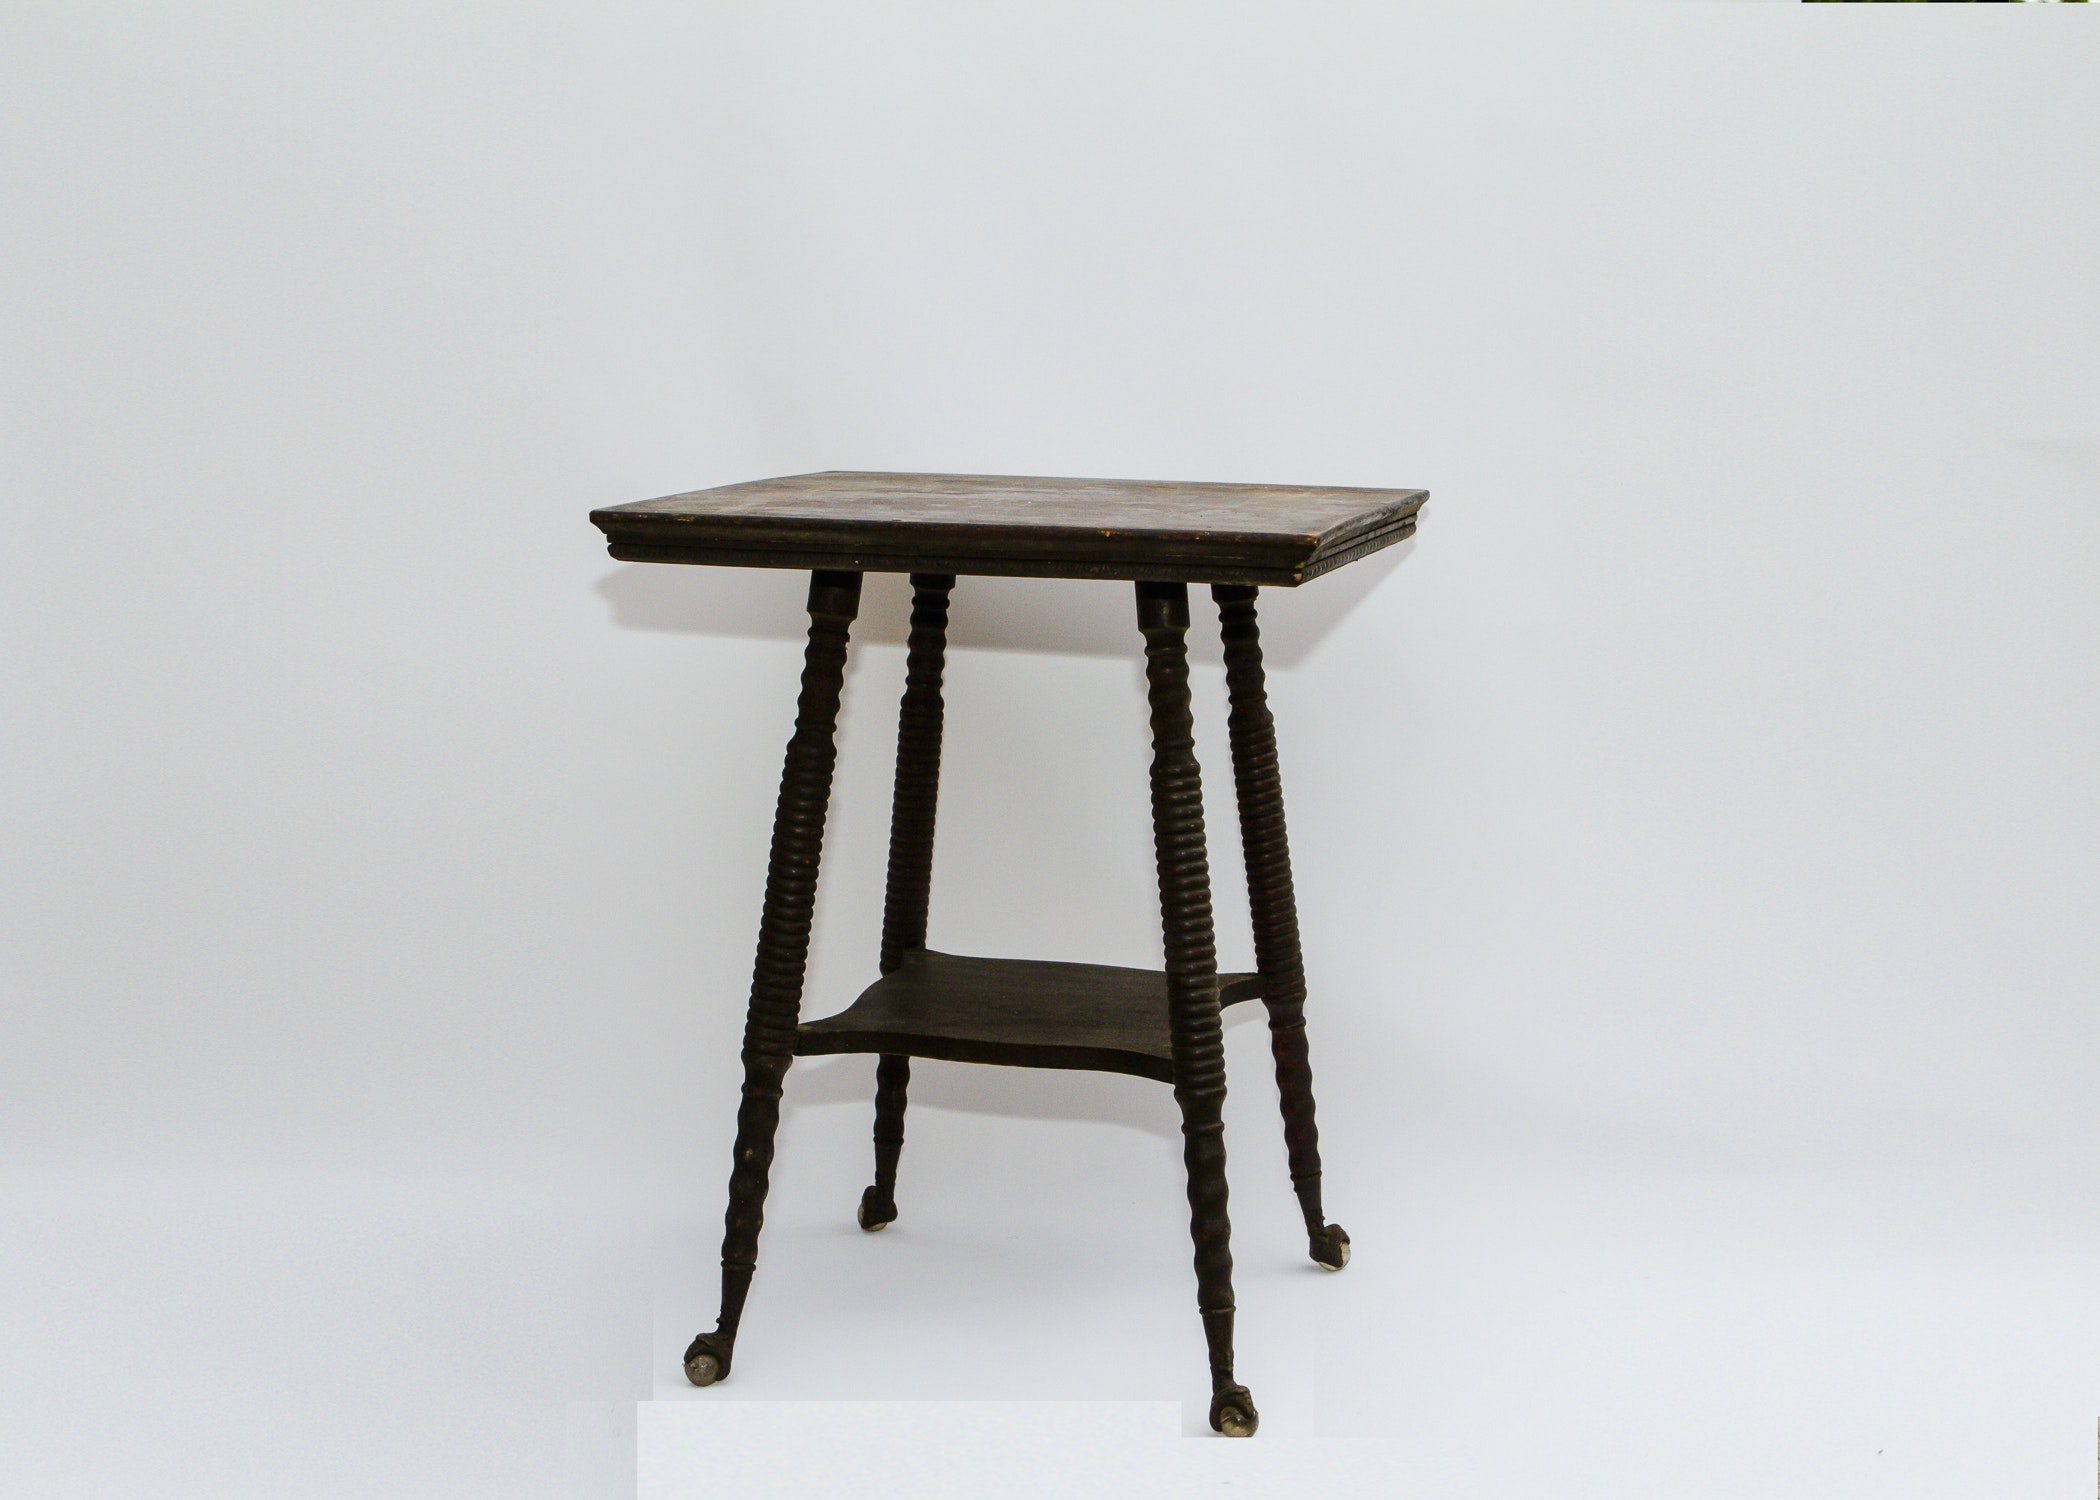 Victorian Antique Parlor Table With Claw And Ball Feet ...